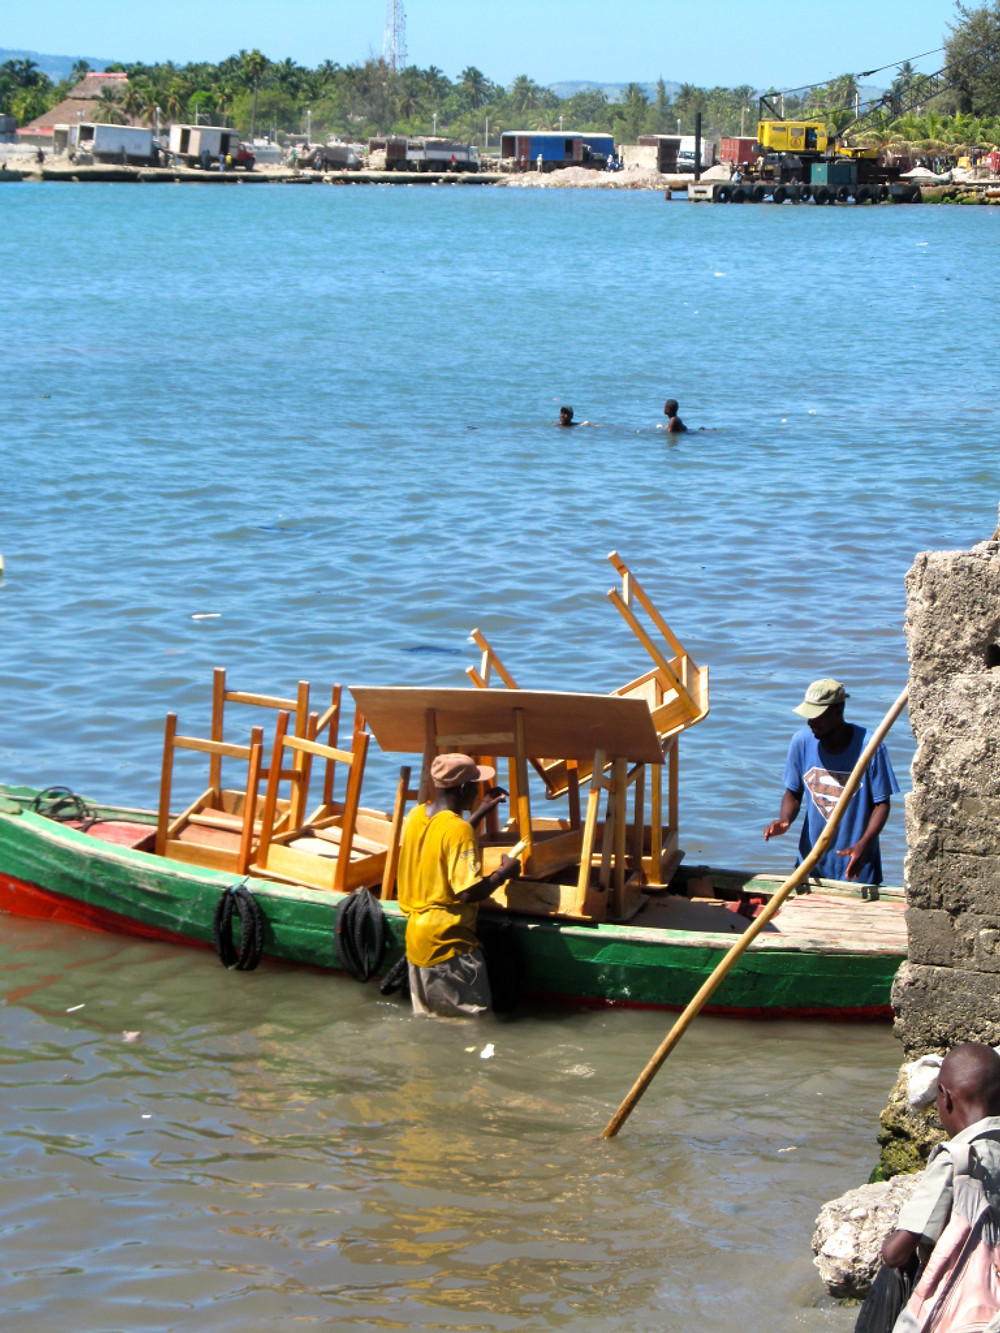 Desks are loaded onto the little ferry boat that will take them to the bigger boat waiting further out in the sea!